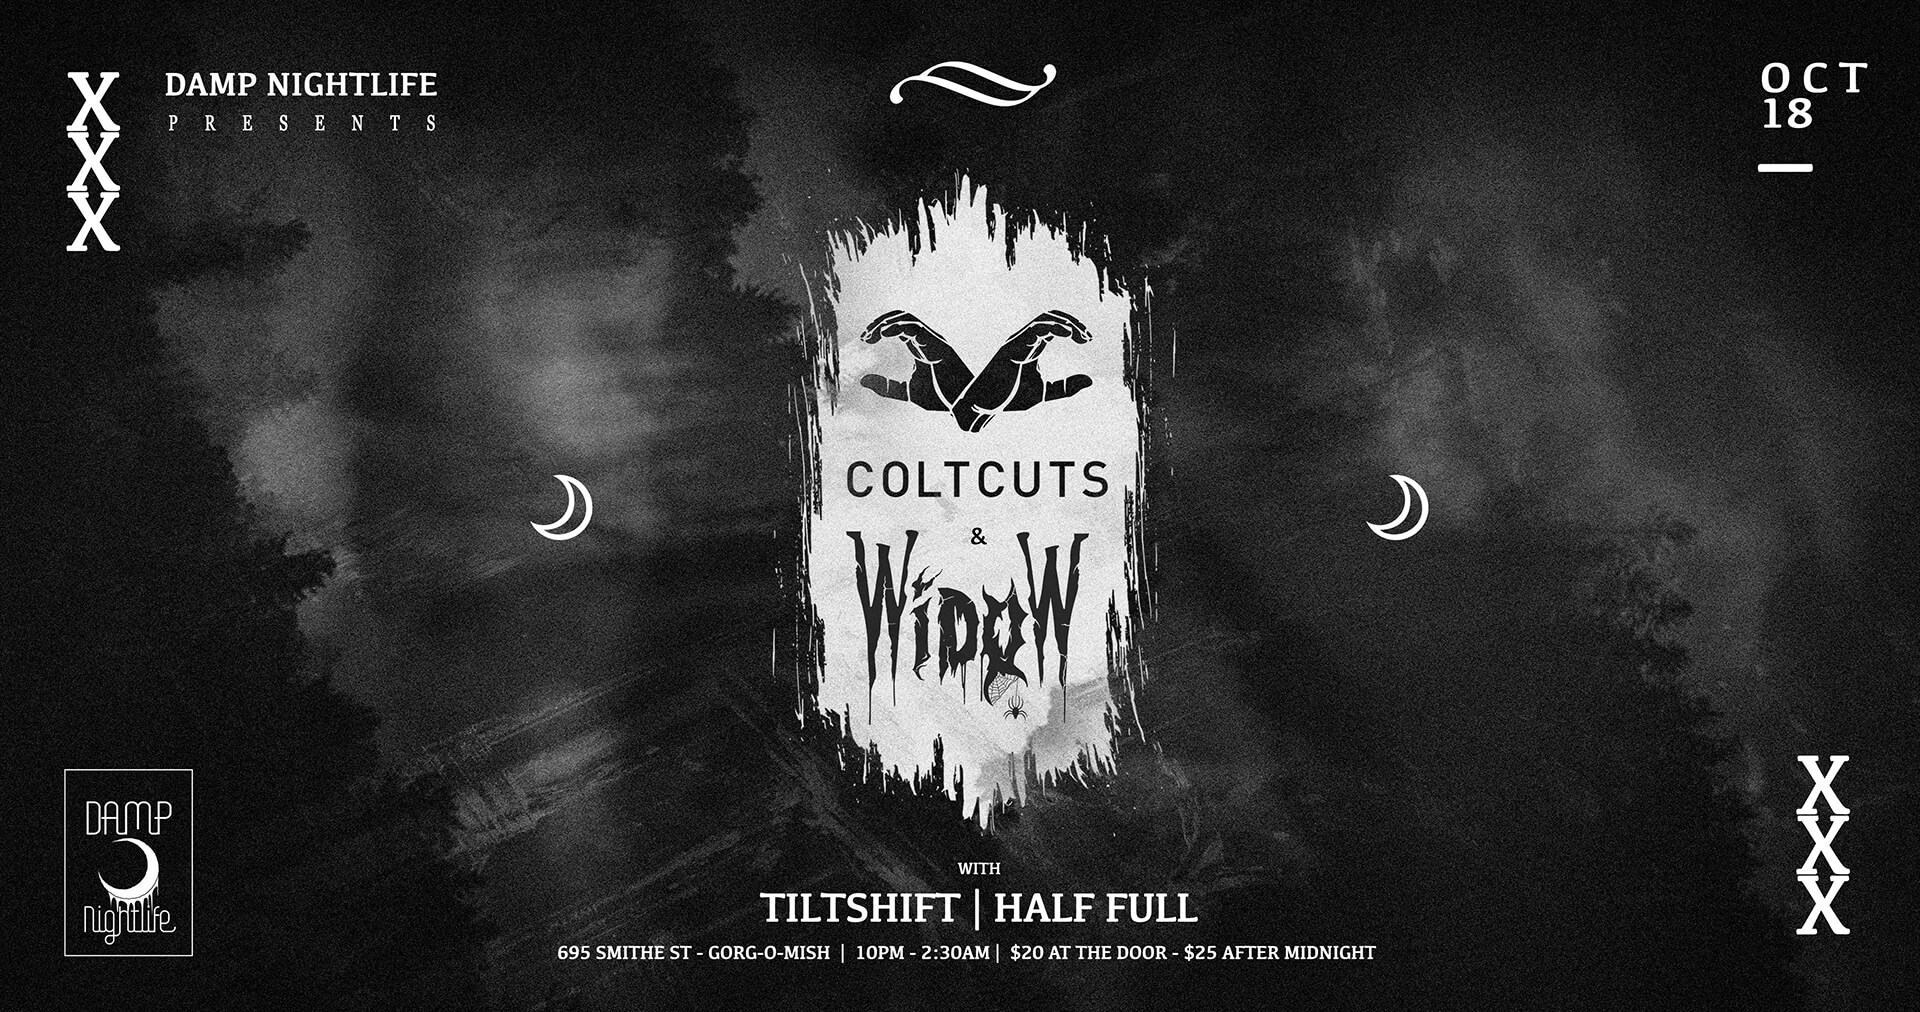 Damp Nightlife pres: ColtCuts x Widow